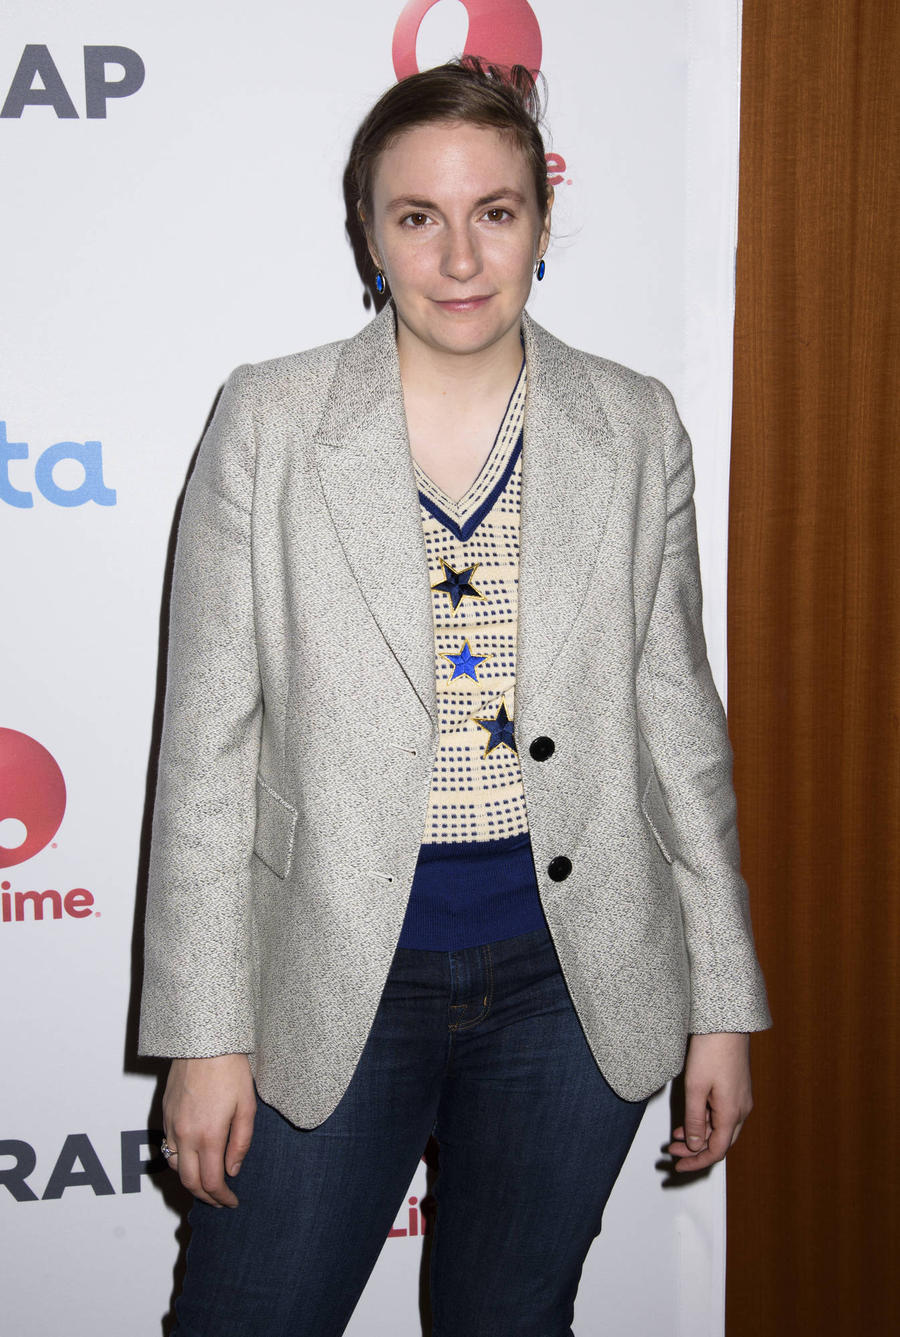 Lena Dunham: 'I Won't Be Working With Male Directors Again'